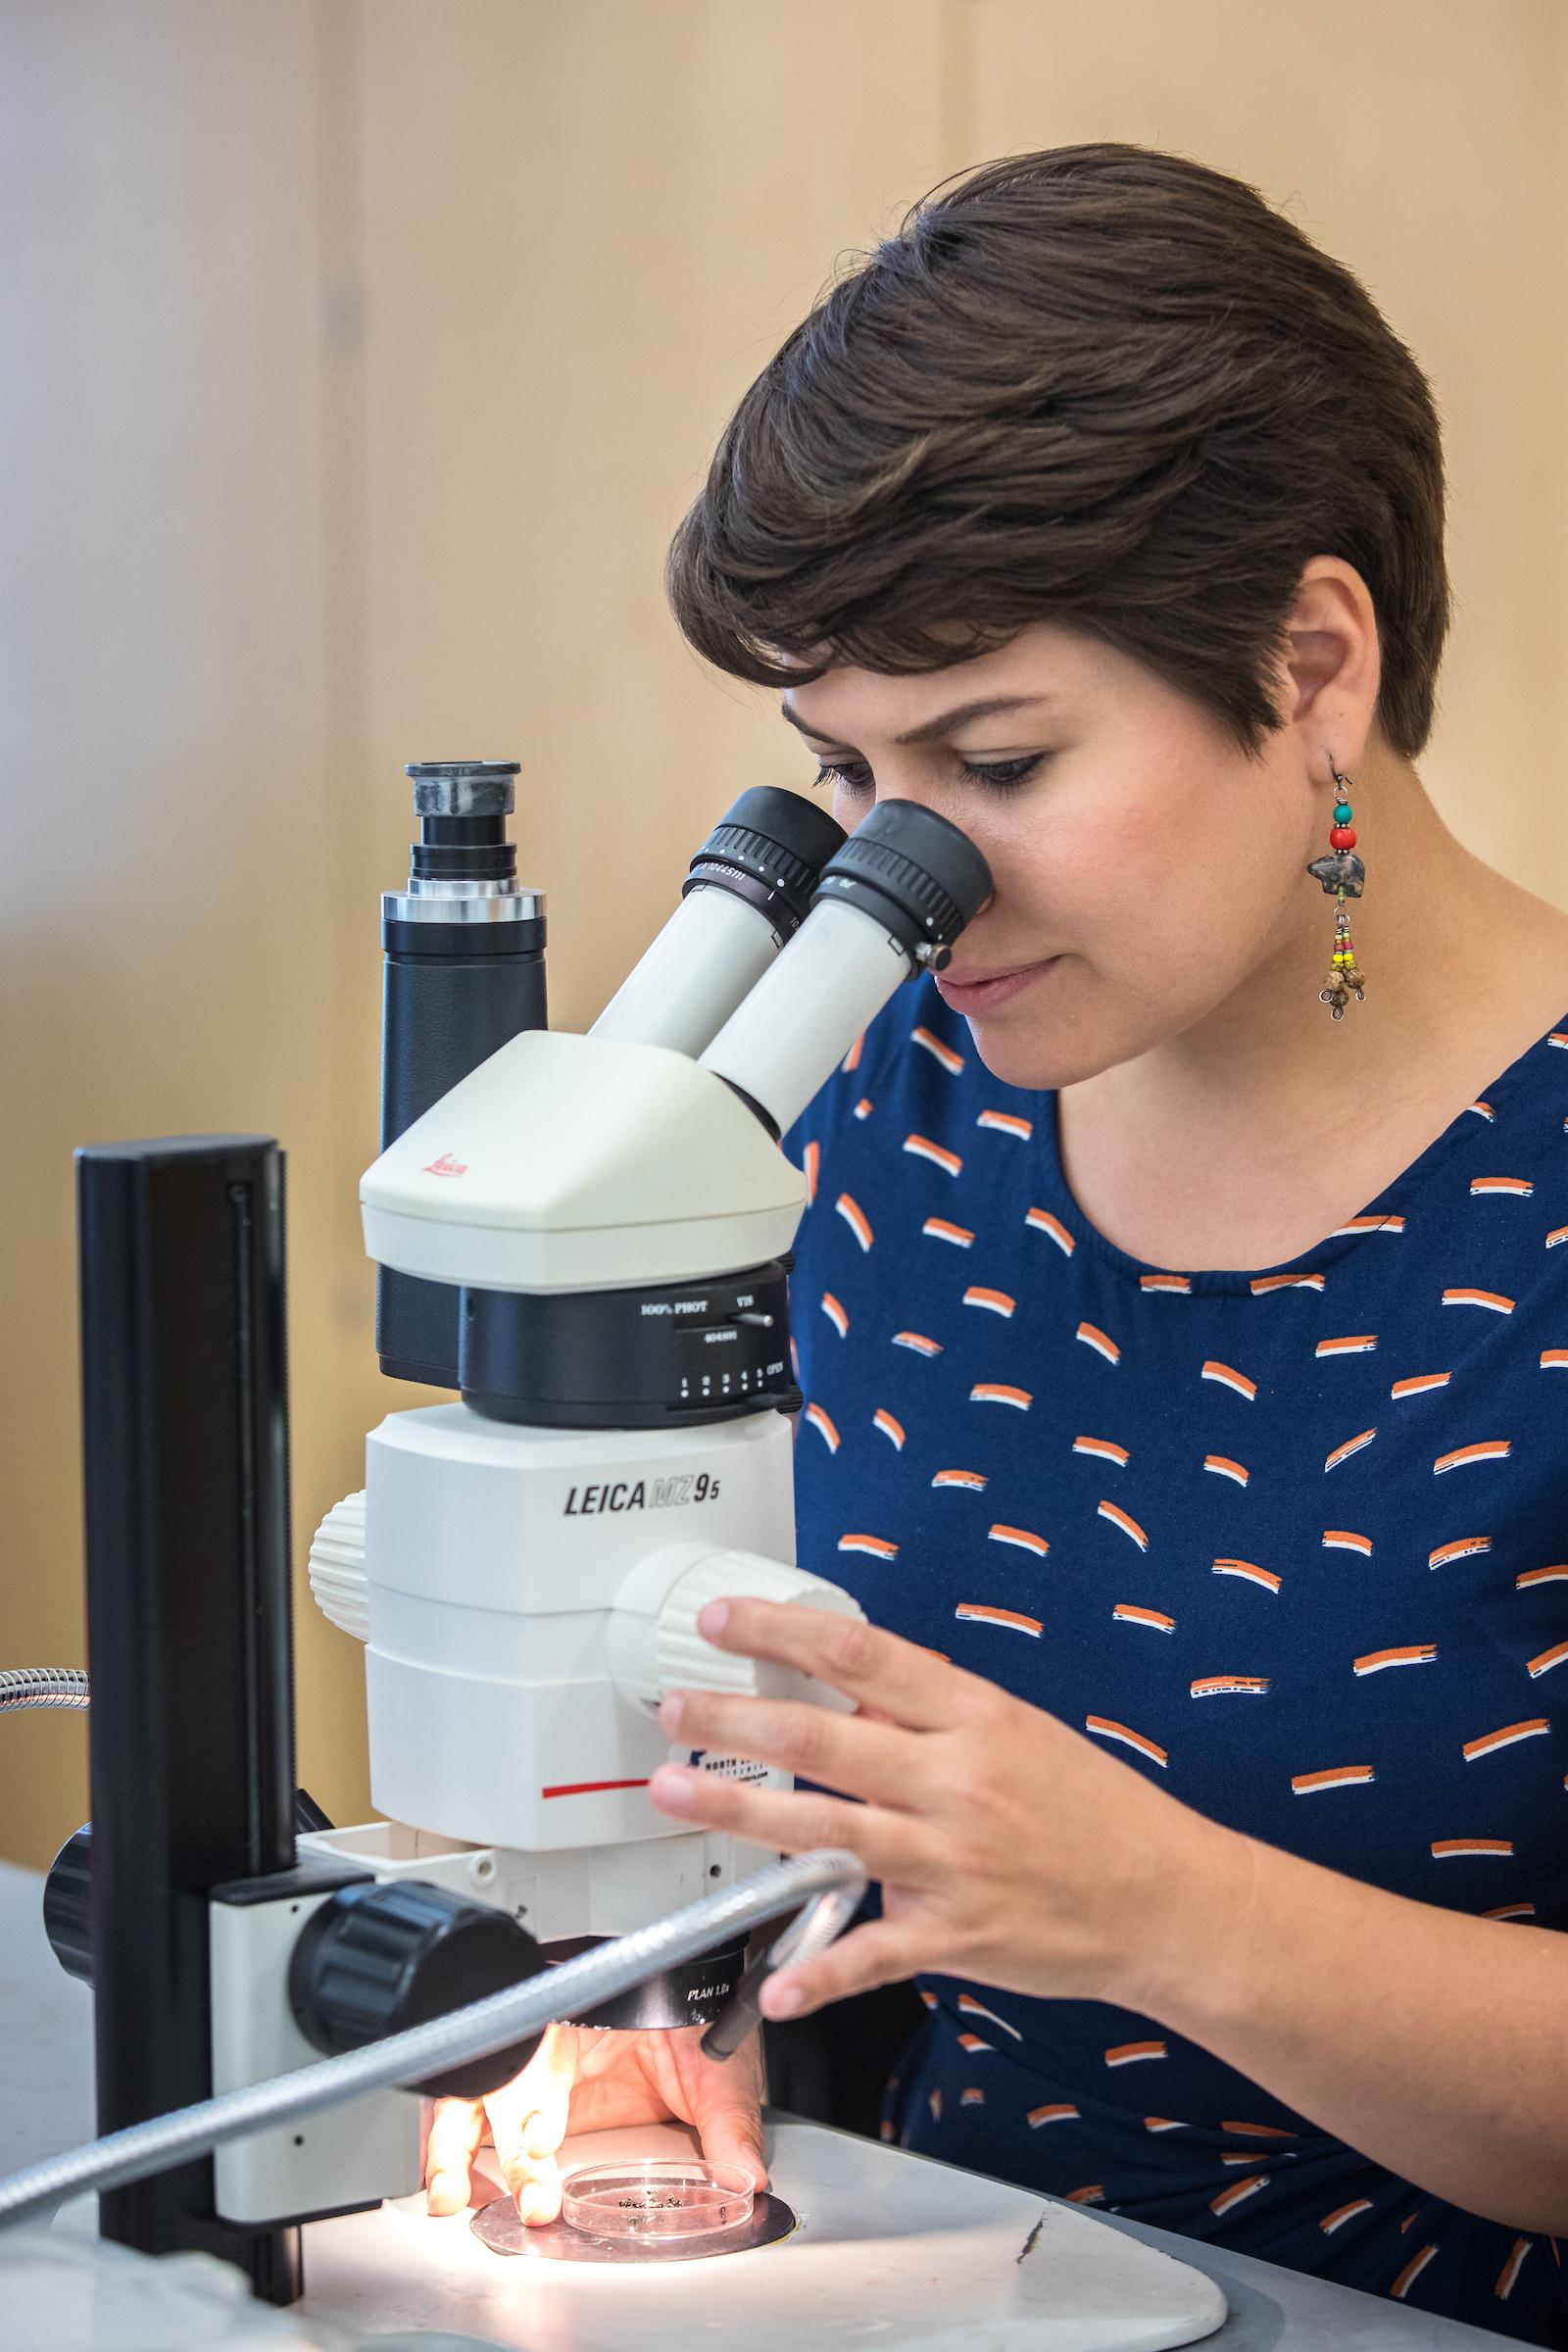 ASU postdoctoral researcher Christina Kwapich examines insects through a microscope